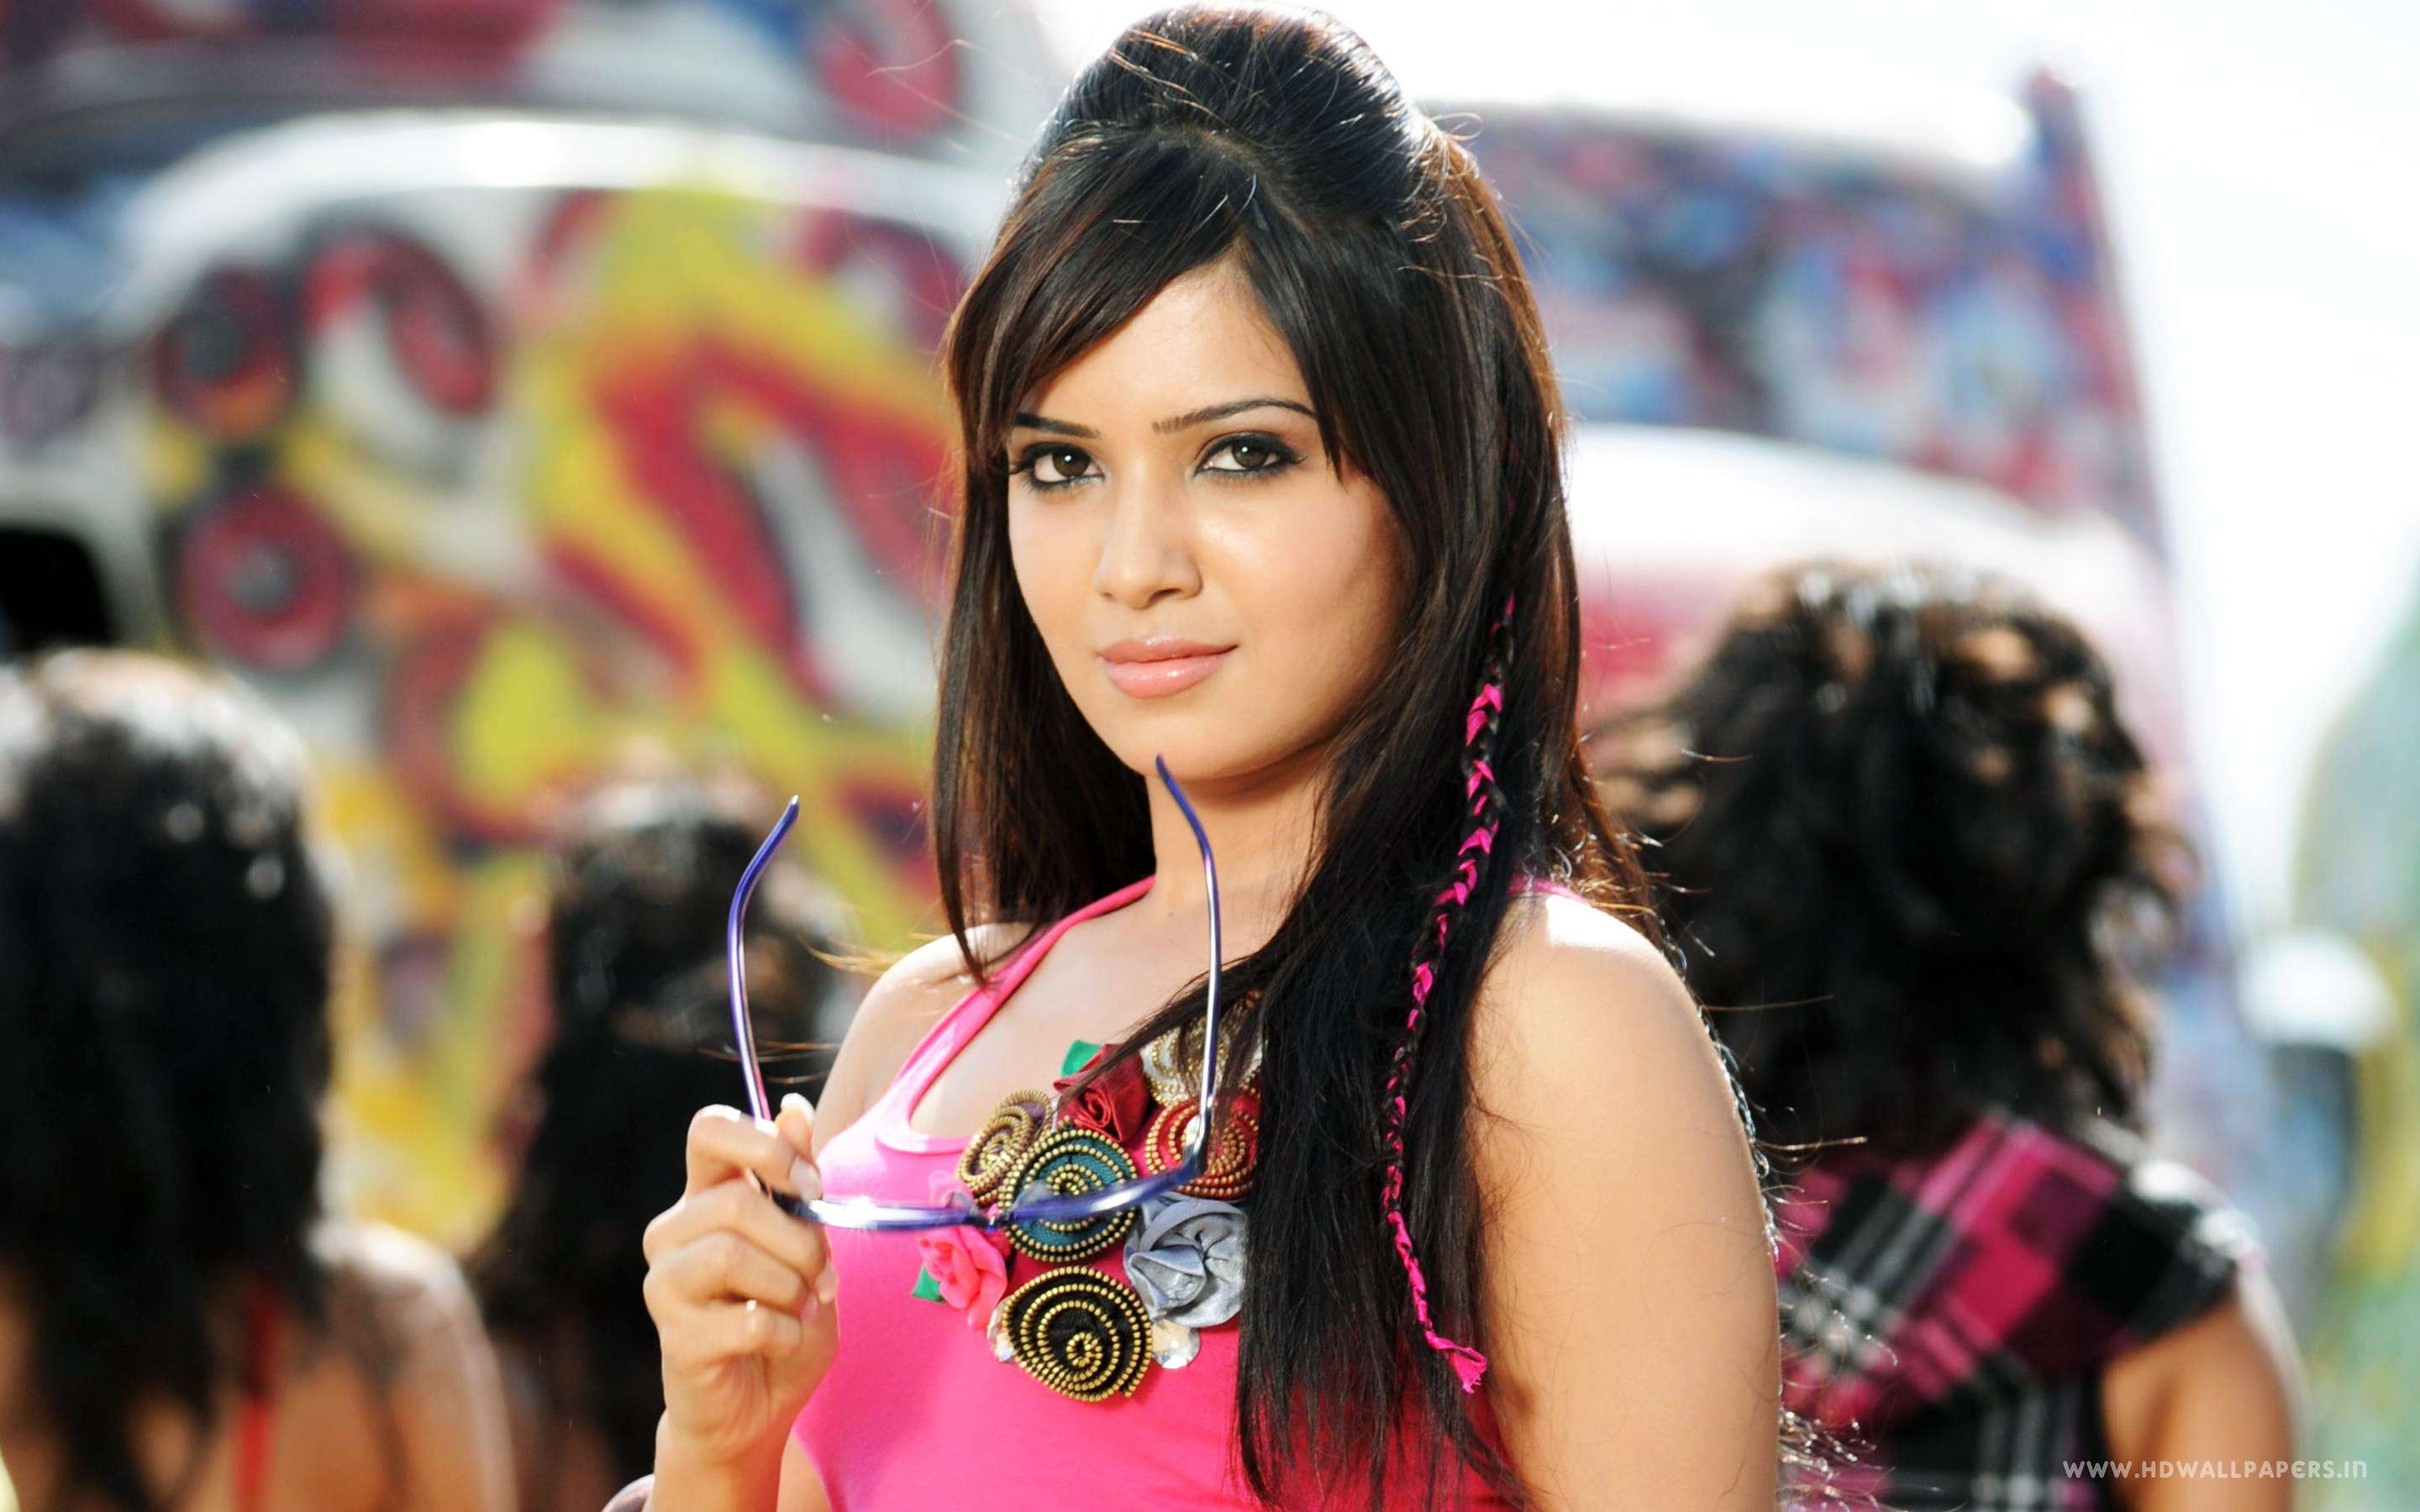 Samantha Hairstyle Wallpapers In Jpg Format For Free Download